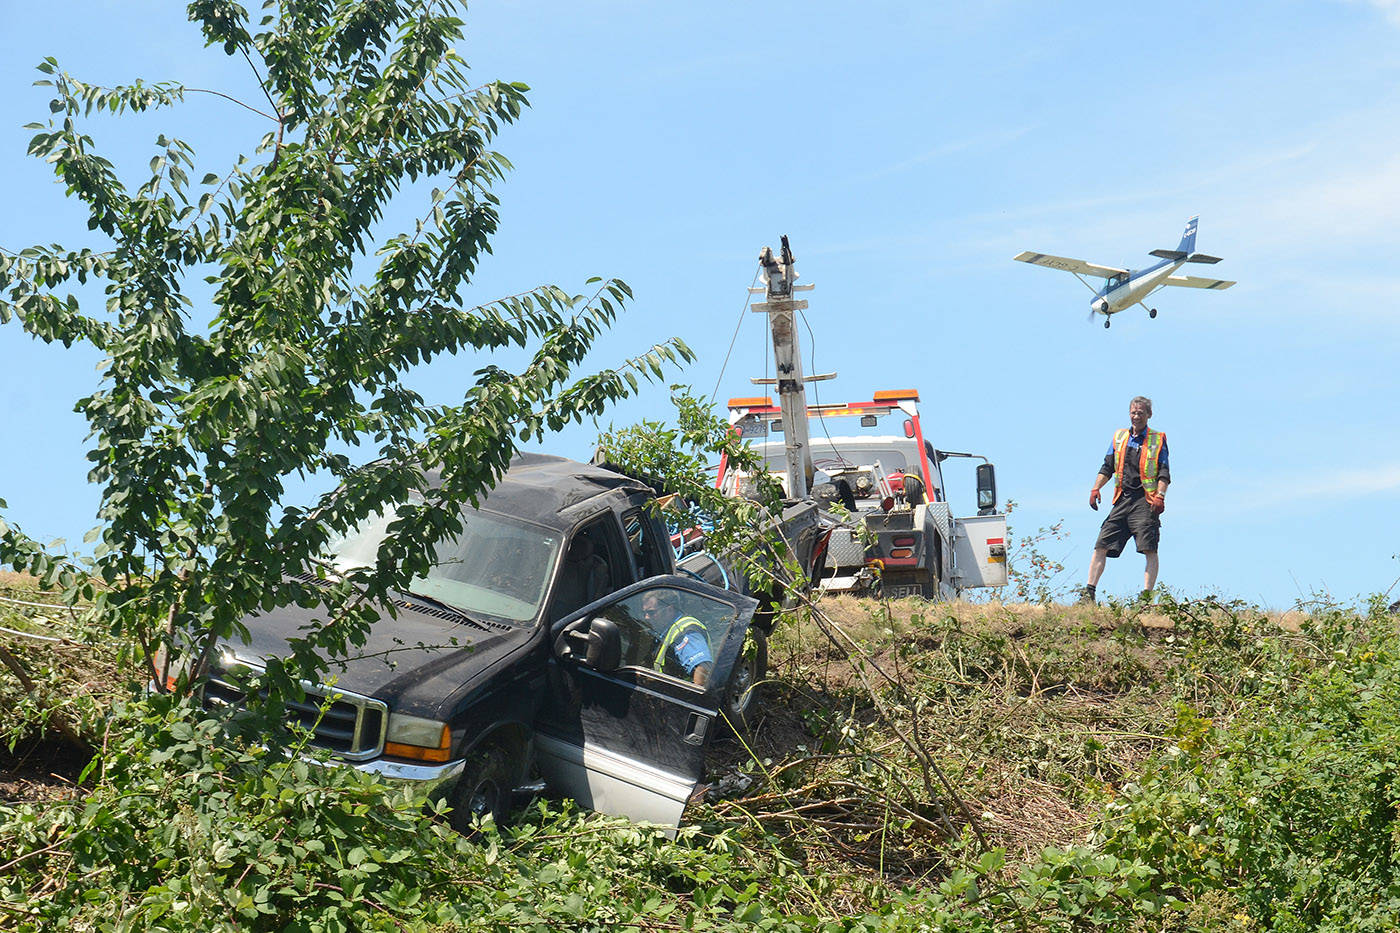 """This is the aftermath of a prolific offender stealing a vehicle in Abbotsford, racing to Chilliwack, and rolling the pickup on this embankment. It took a team of tow-truck drivers to remove the truck and its trailer from the blackberry bushes. This was taken from below as the truck was being pulled up to the road and as a plane serendipitously flew overhead giving the photo a little more visual interest."" (Paul Henderson/Chilliwack Progress)"